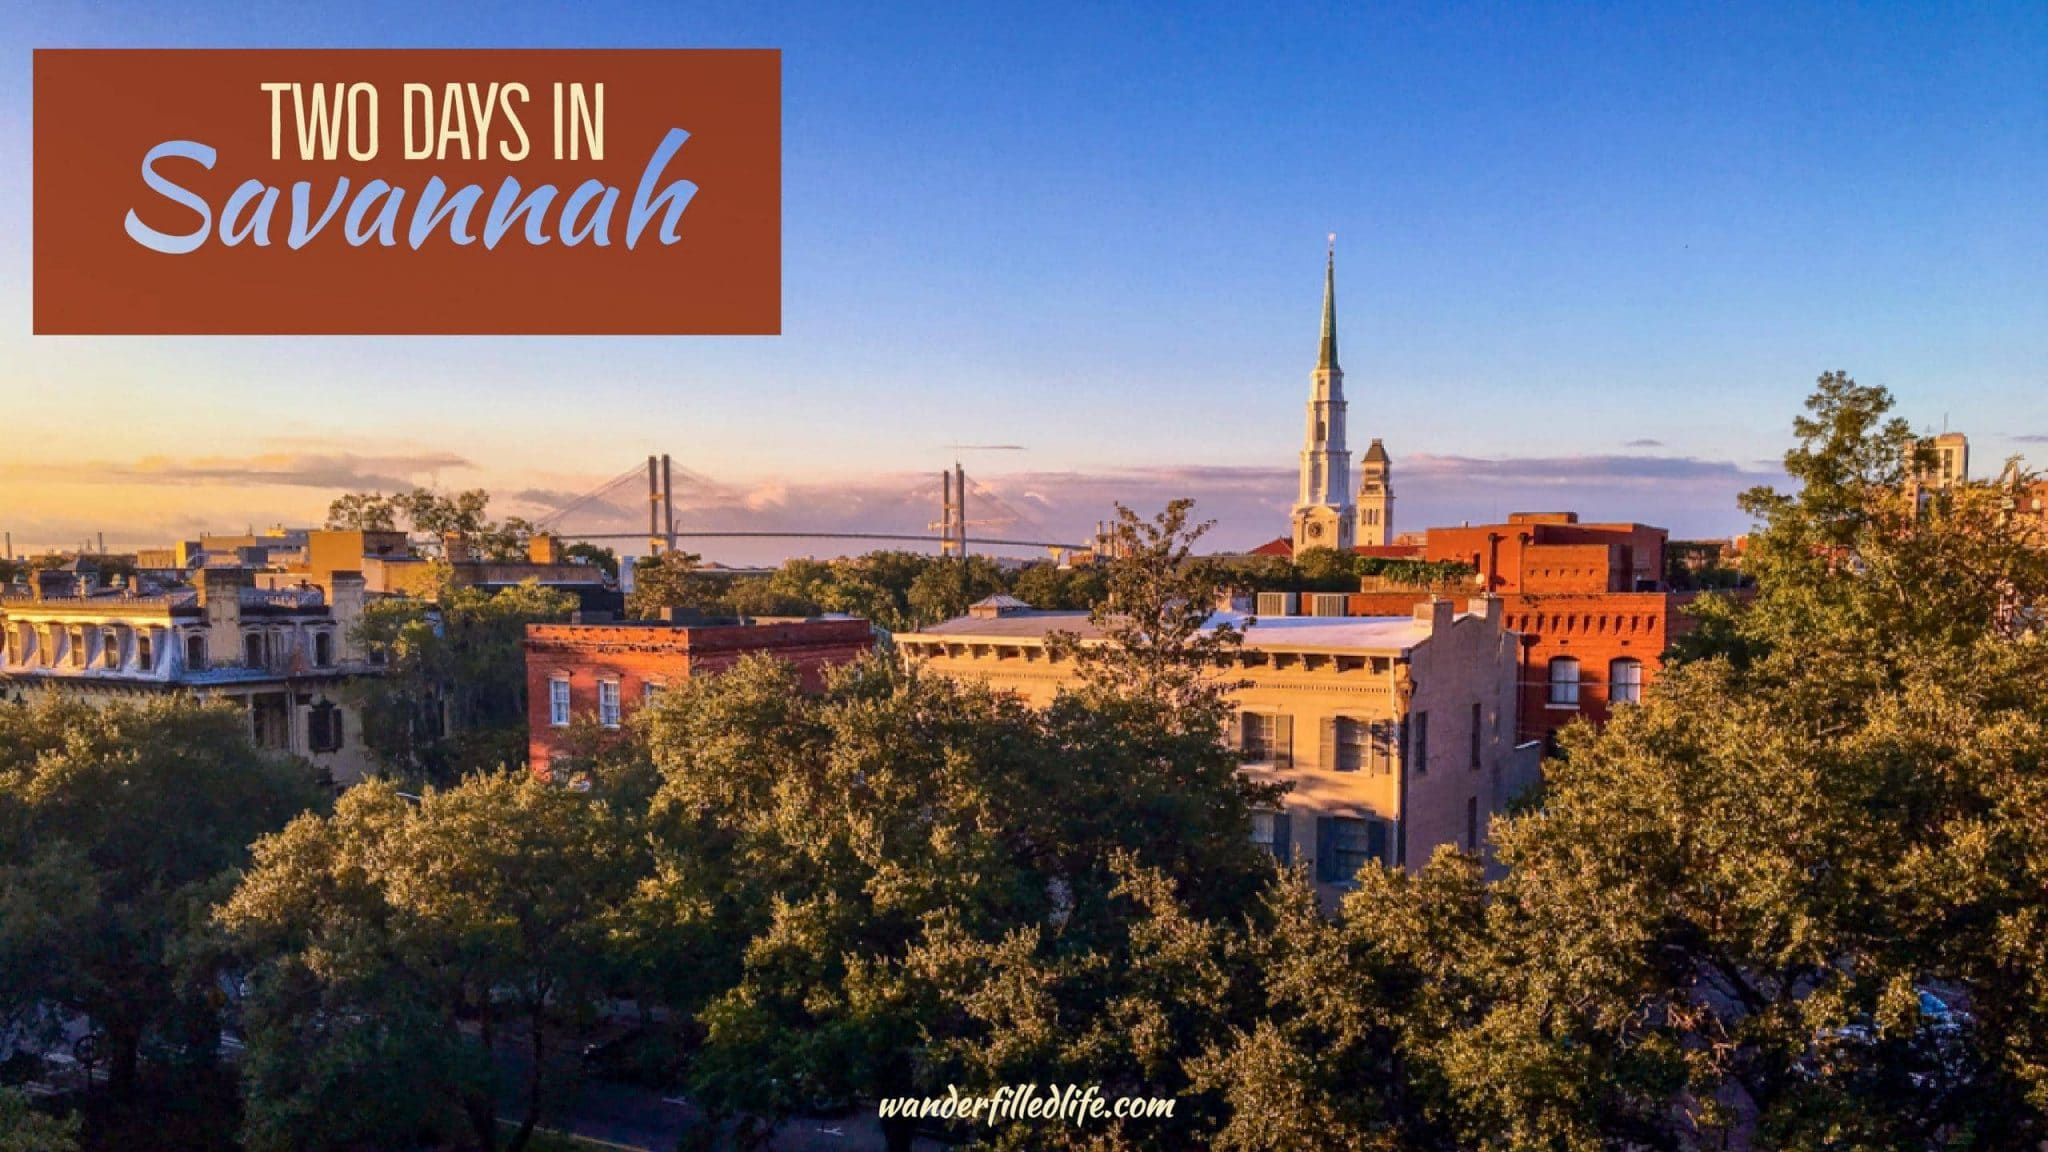 Two Days in Savannah